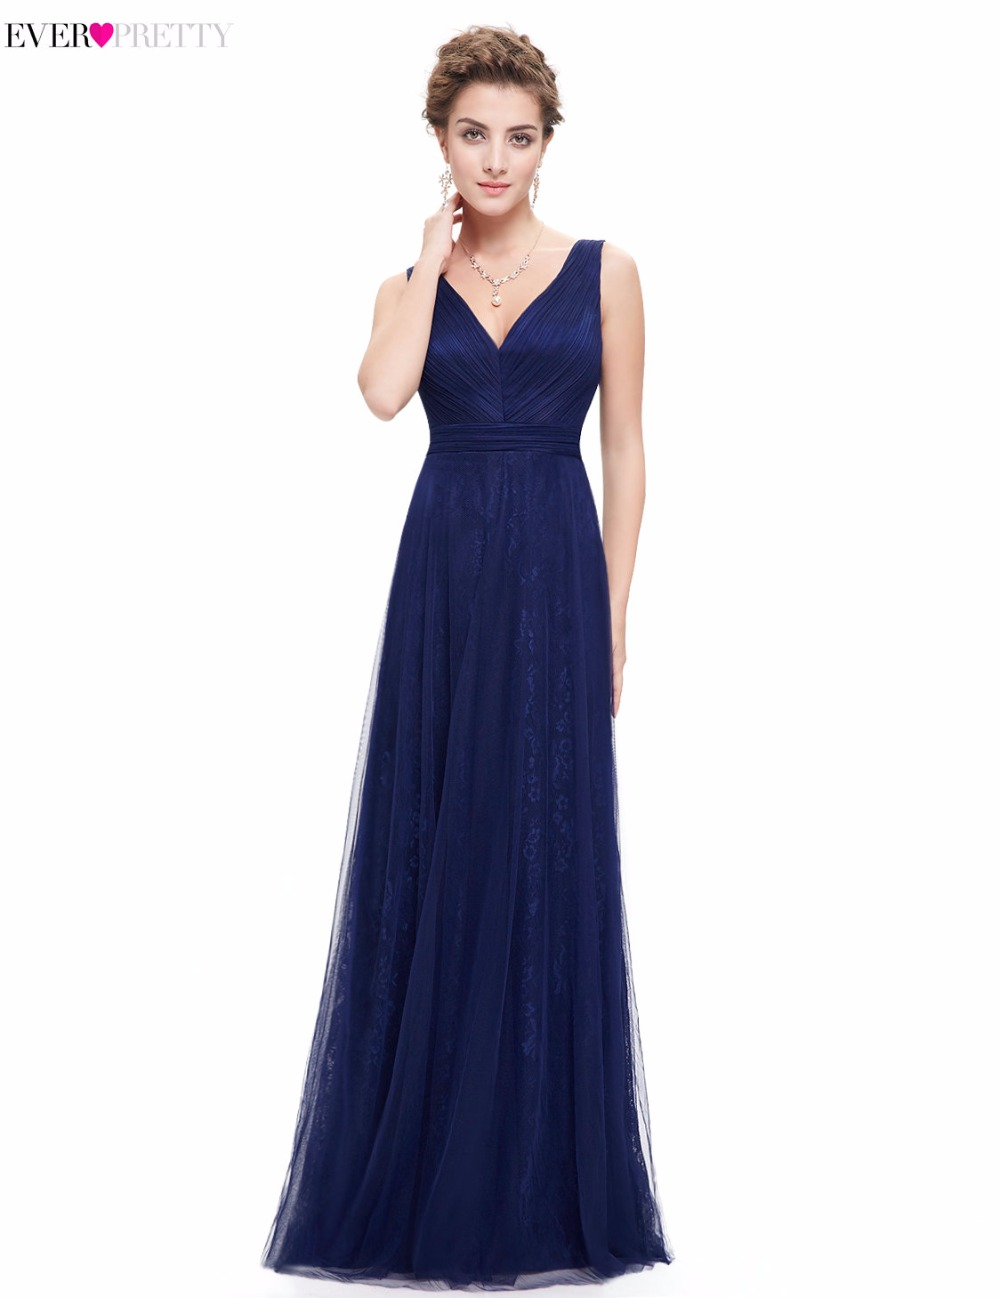 Clearance sale sexy evening dresses 2017 ever pretty for Navy evening dresses for weddings